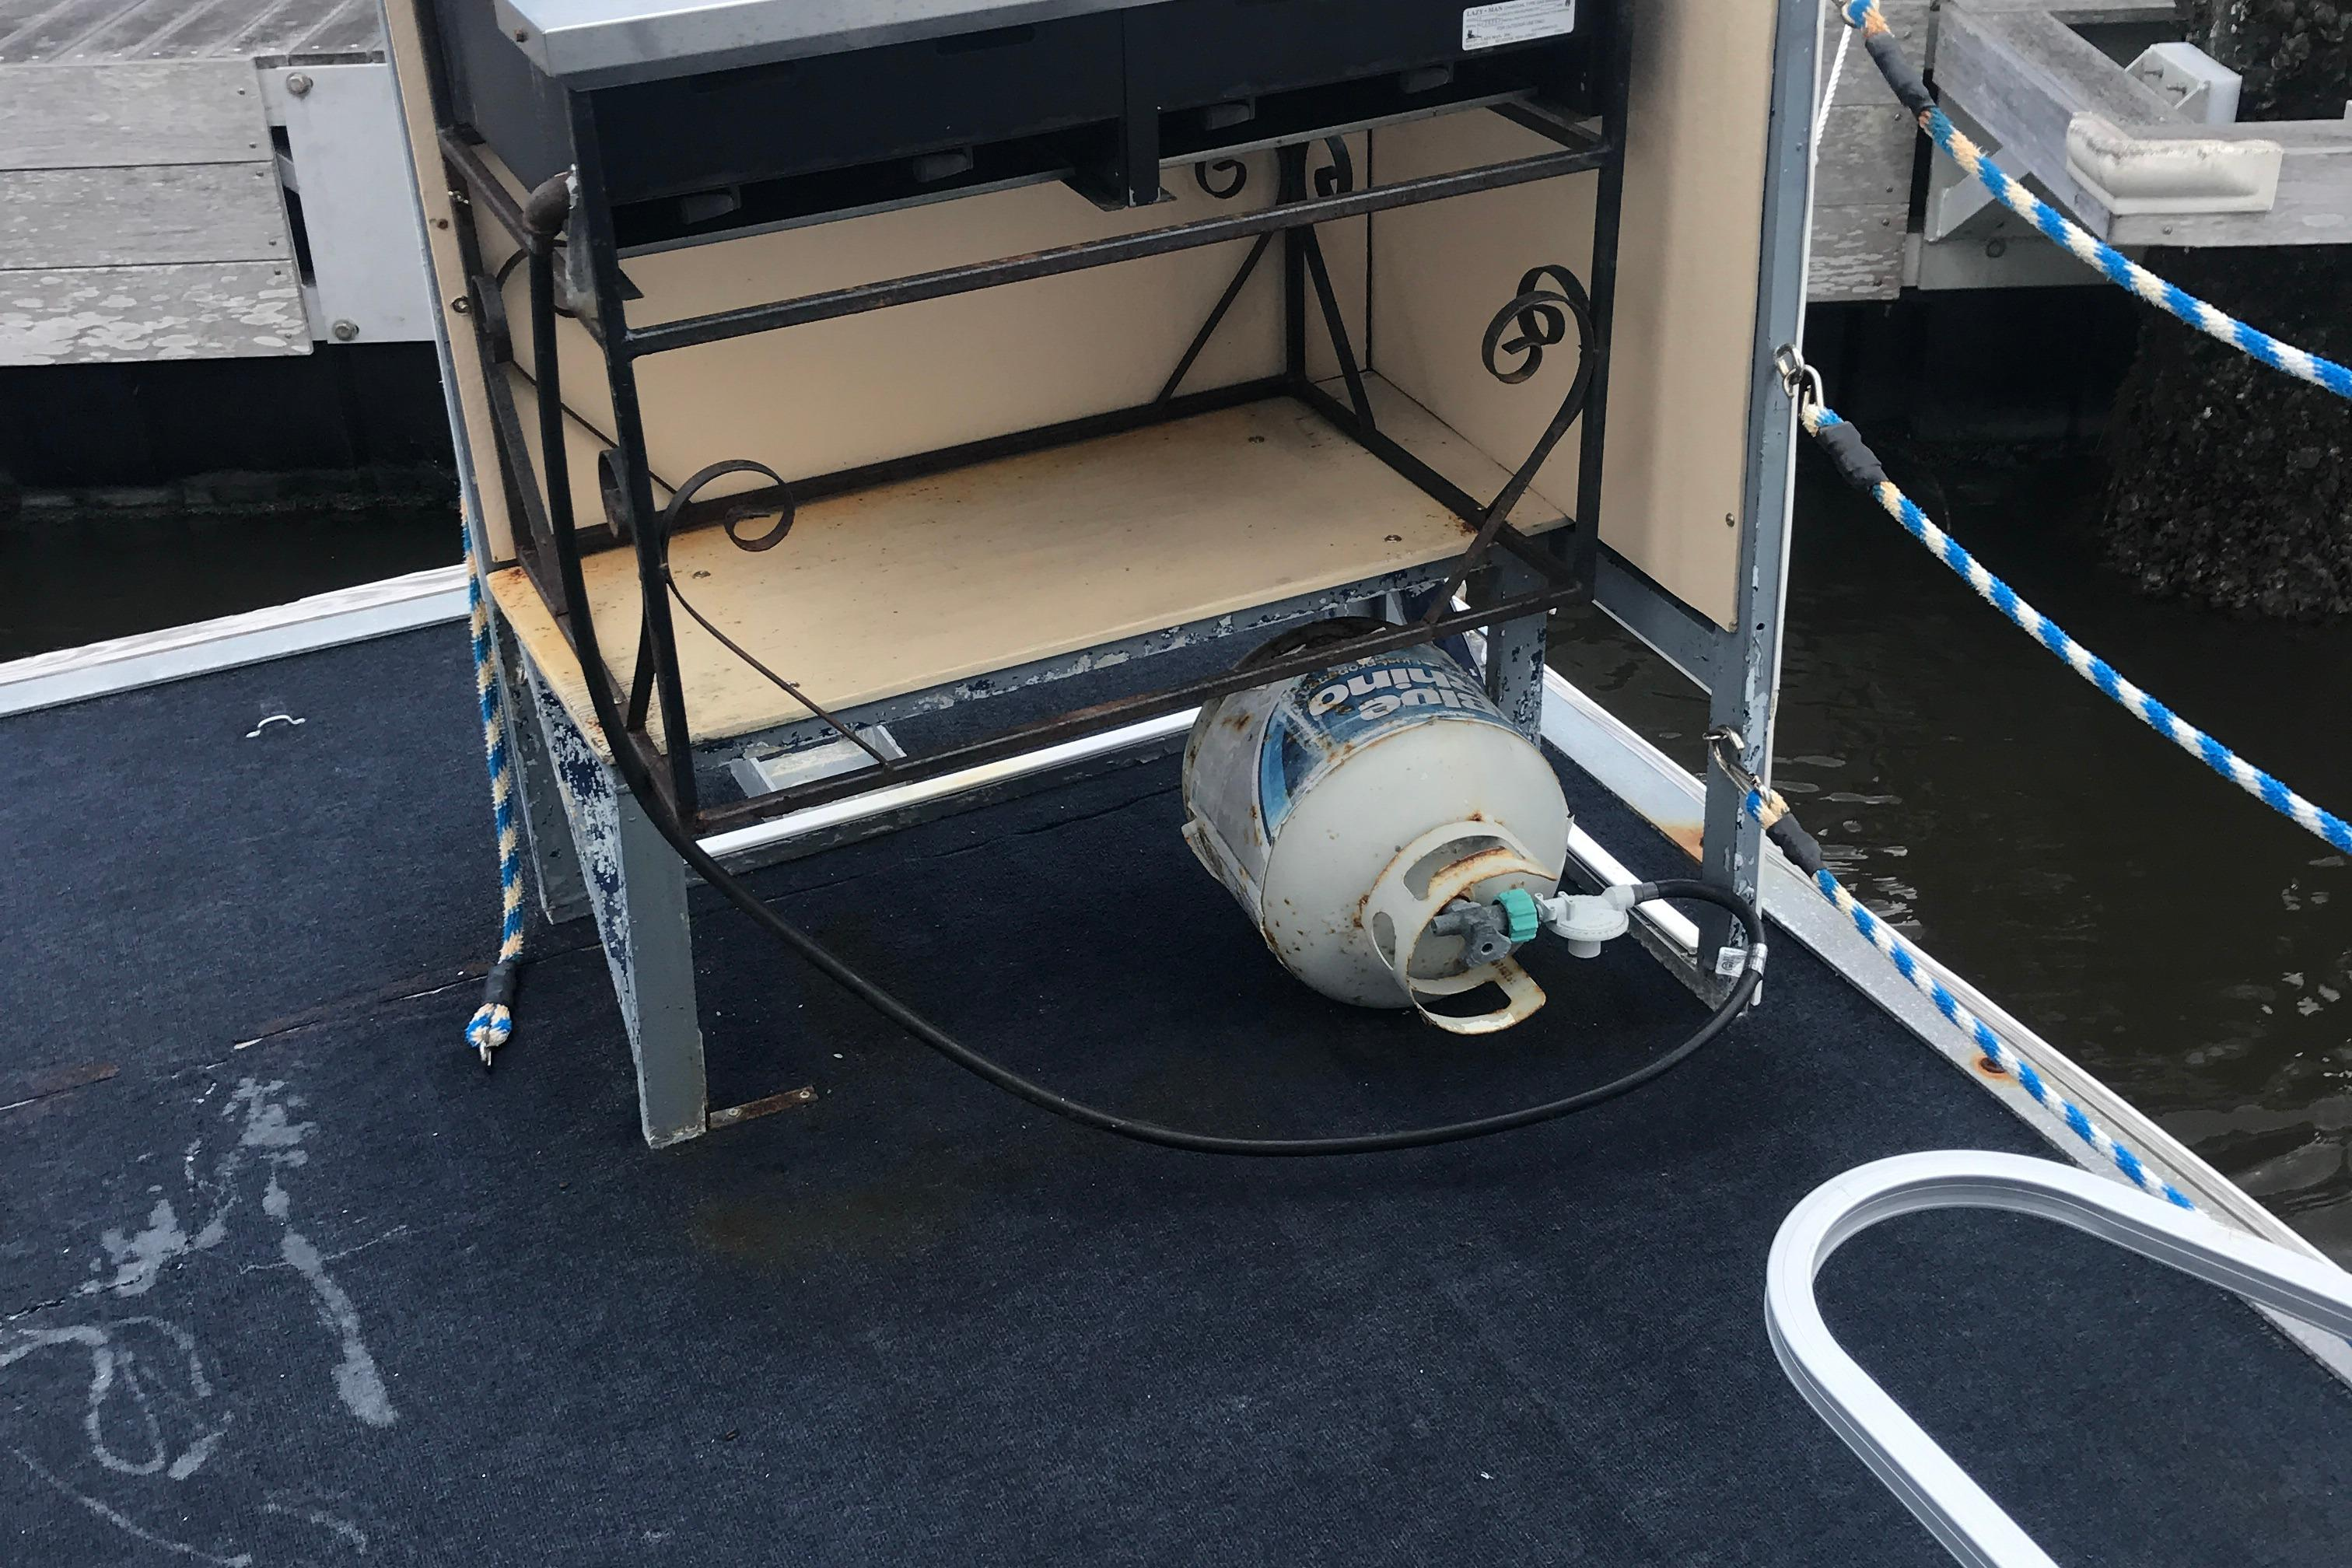 Southern Star 32 Commerical Catamaran - Propane Grill on starboard bow